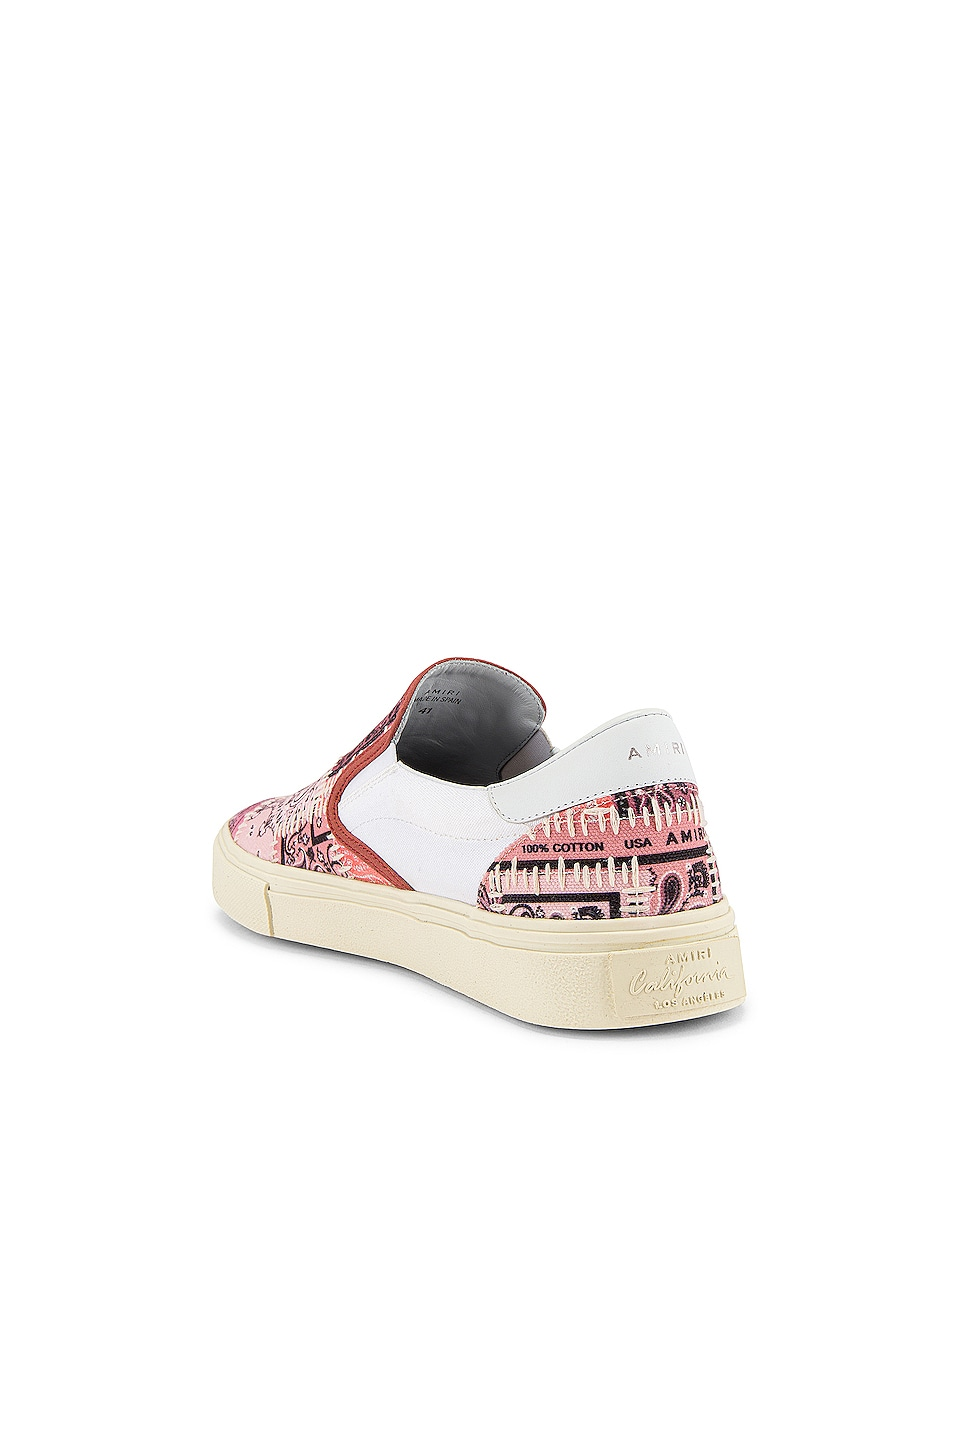 Image 3 of Amiri Bandana Reconstructed Slip On in Coral